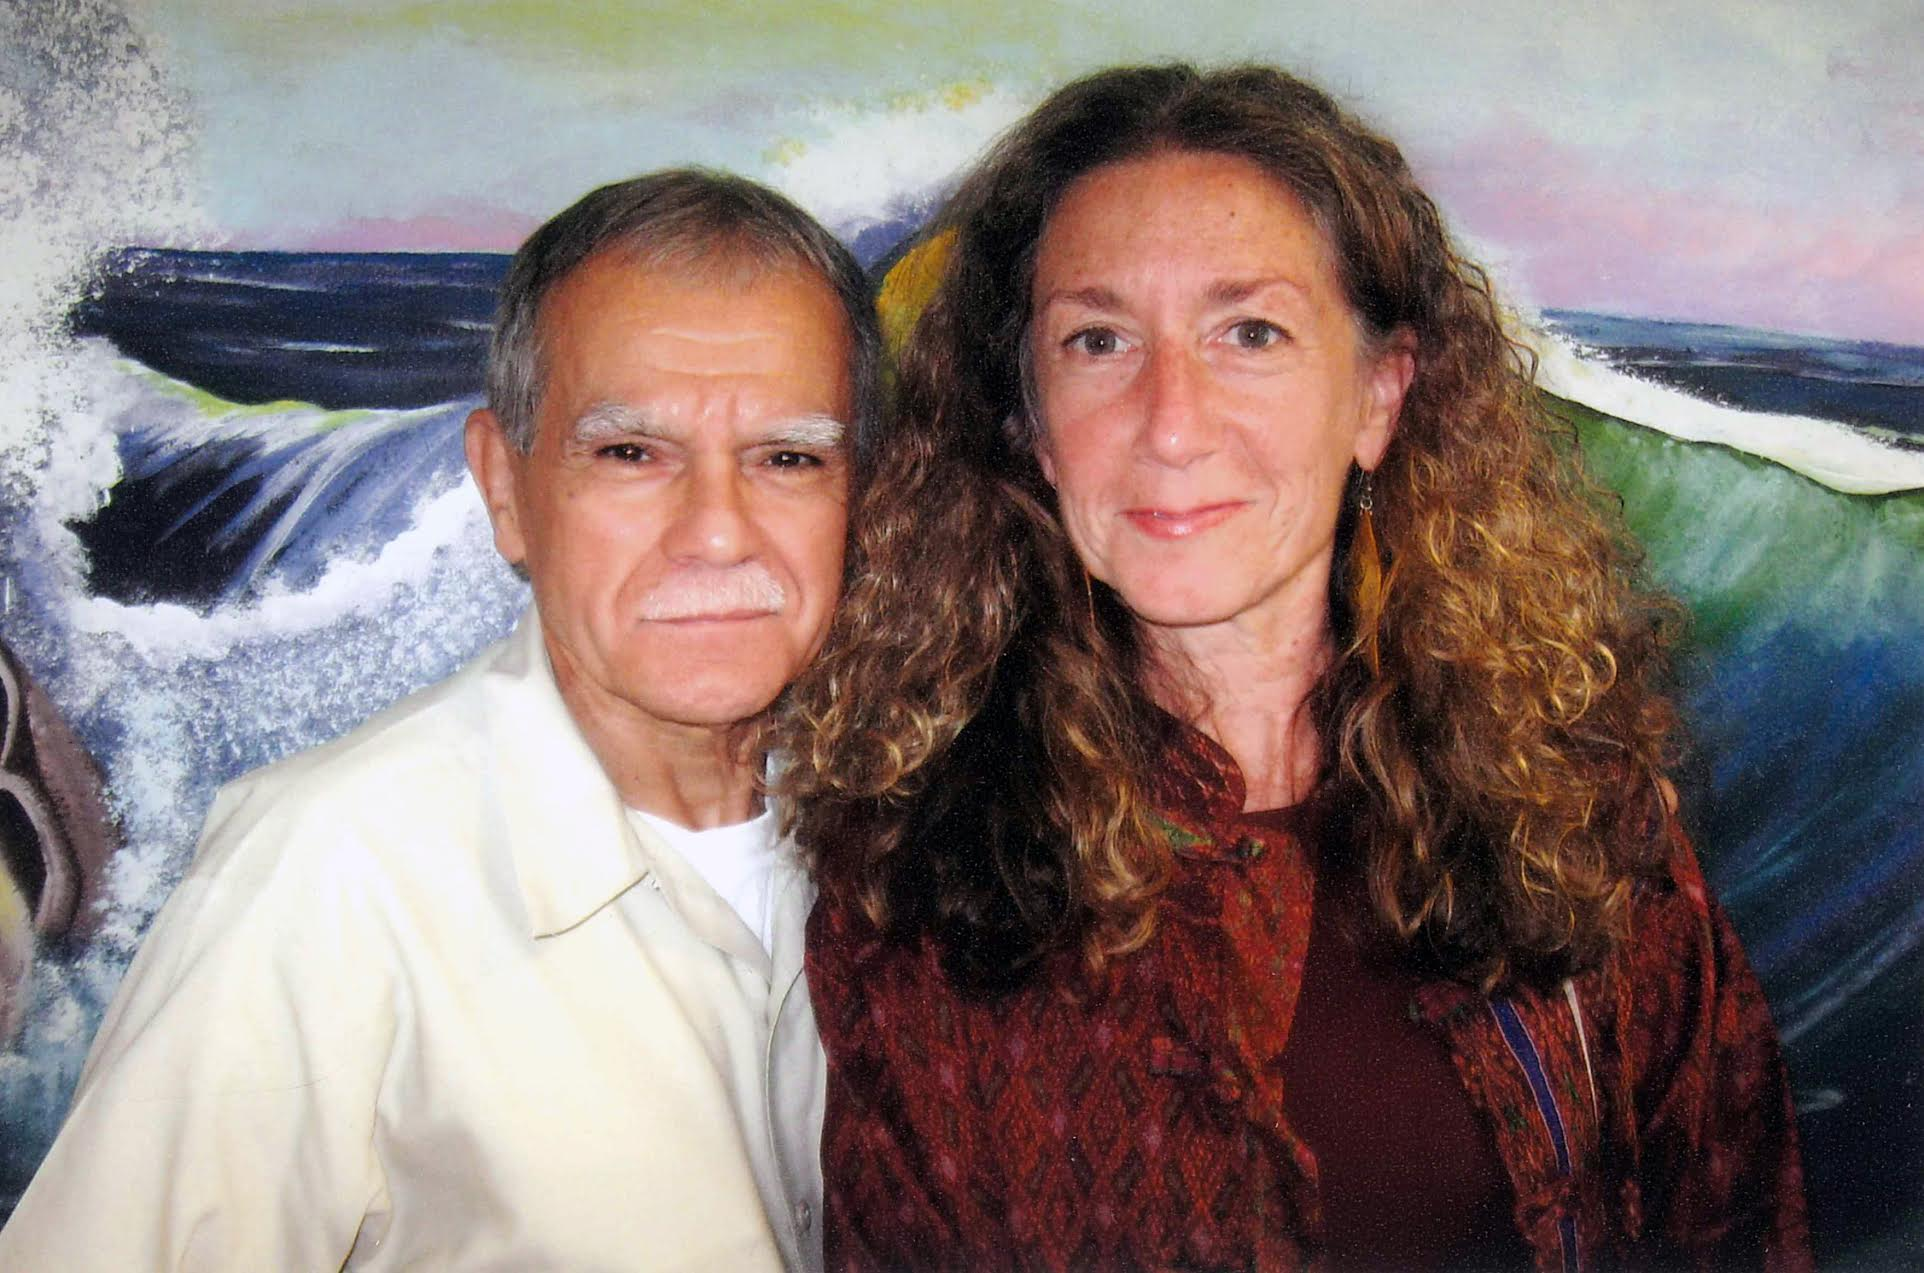 Oscar Lopez Rivera and Jan Susler. Photo courtesy Jan Susler.